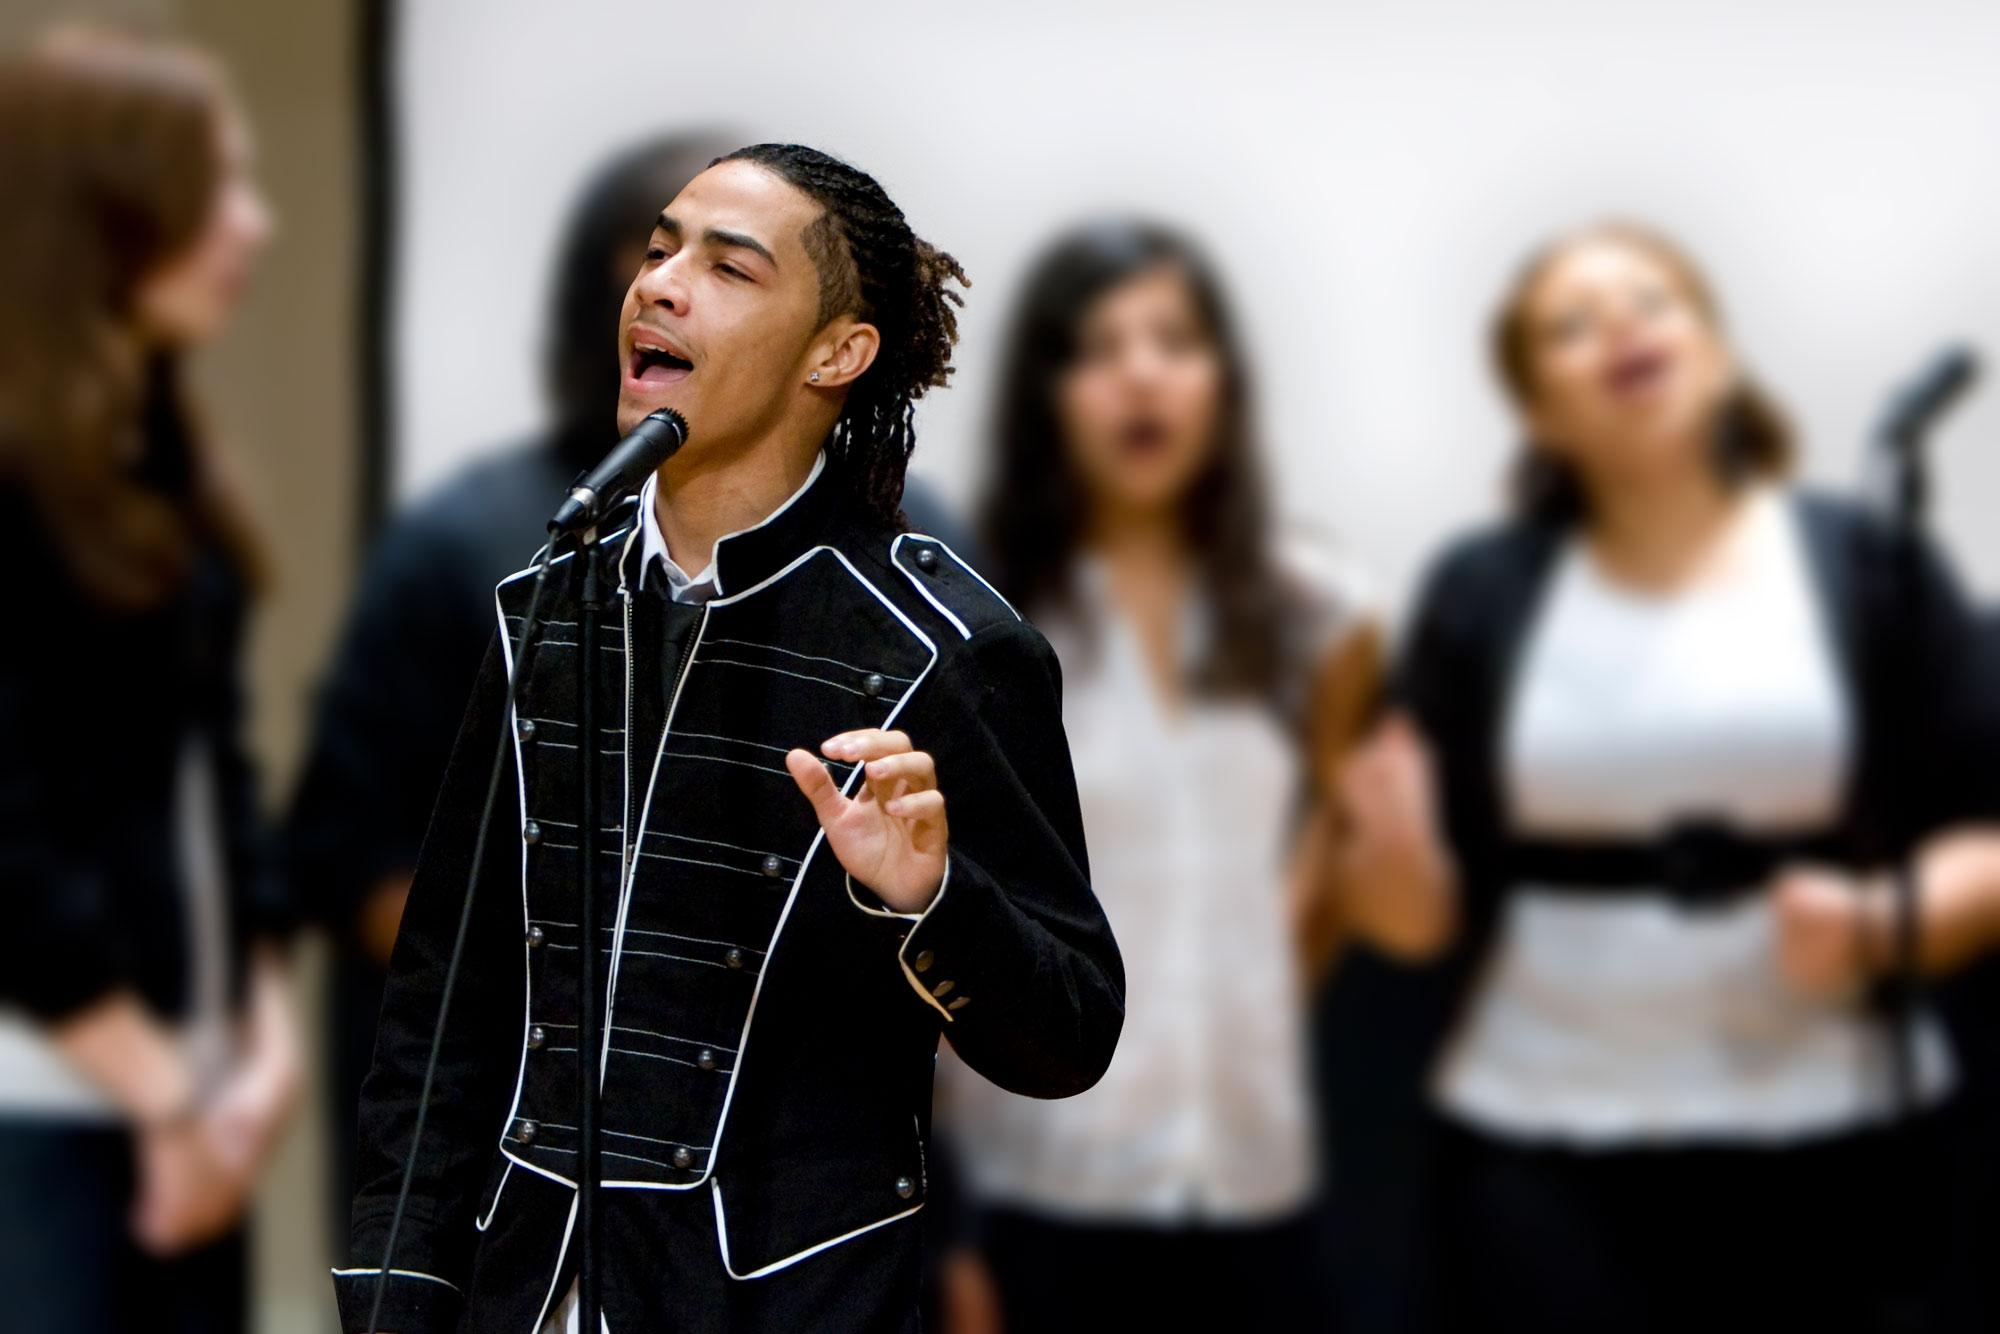 Rogers, a 2009 graduate, is seen here performing with the UVA a cappella group Remix in 2008. (Photo by Jane Haley)